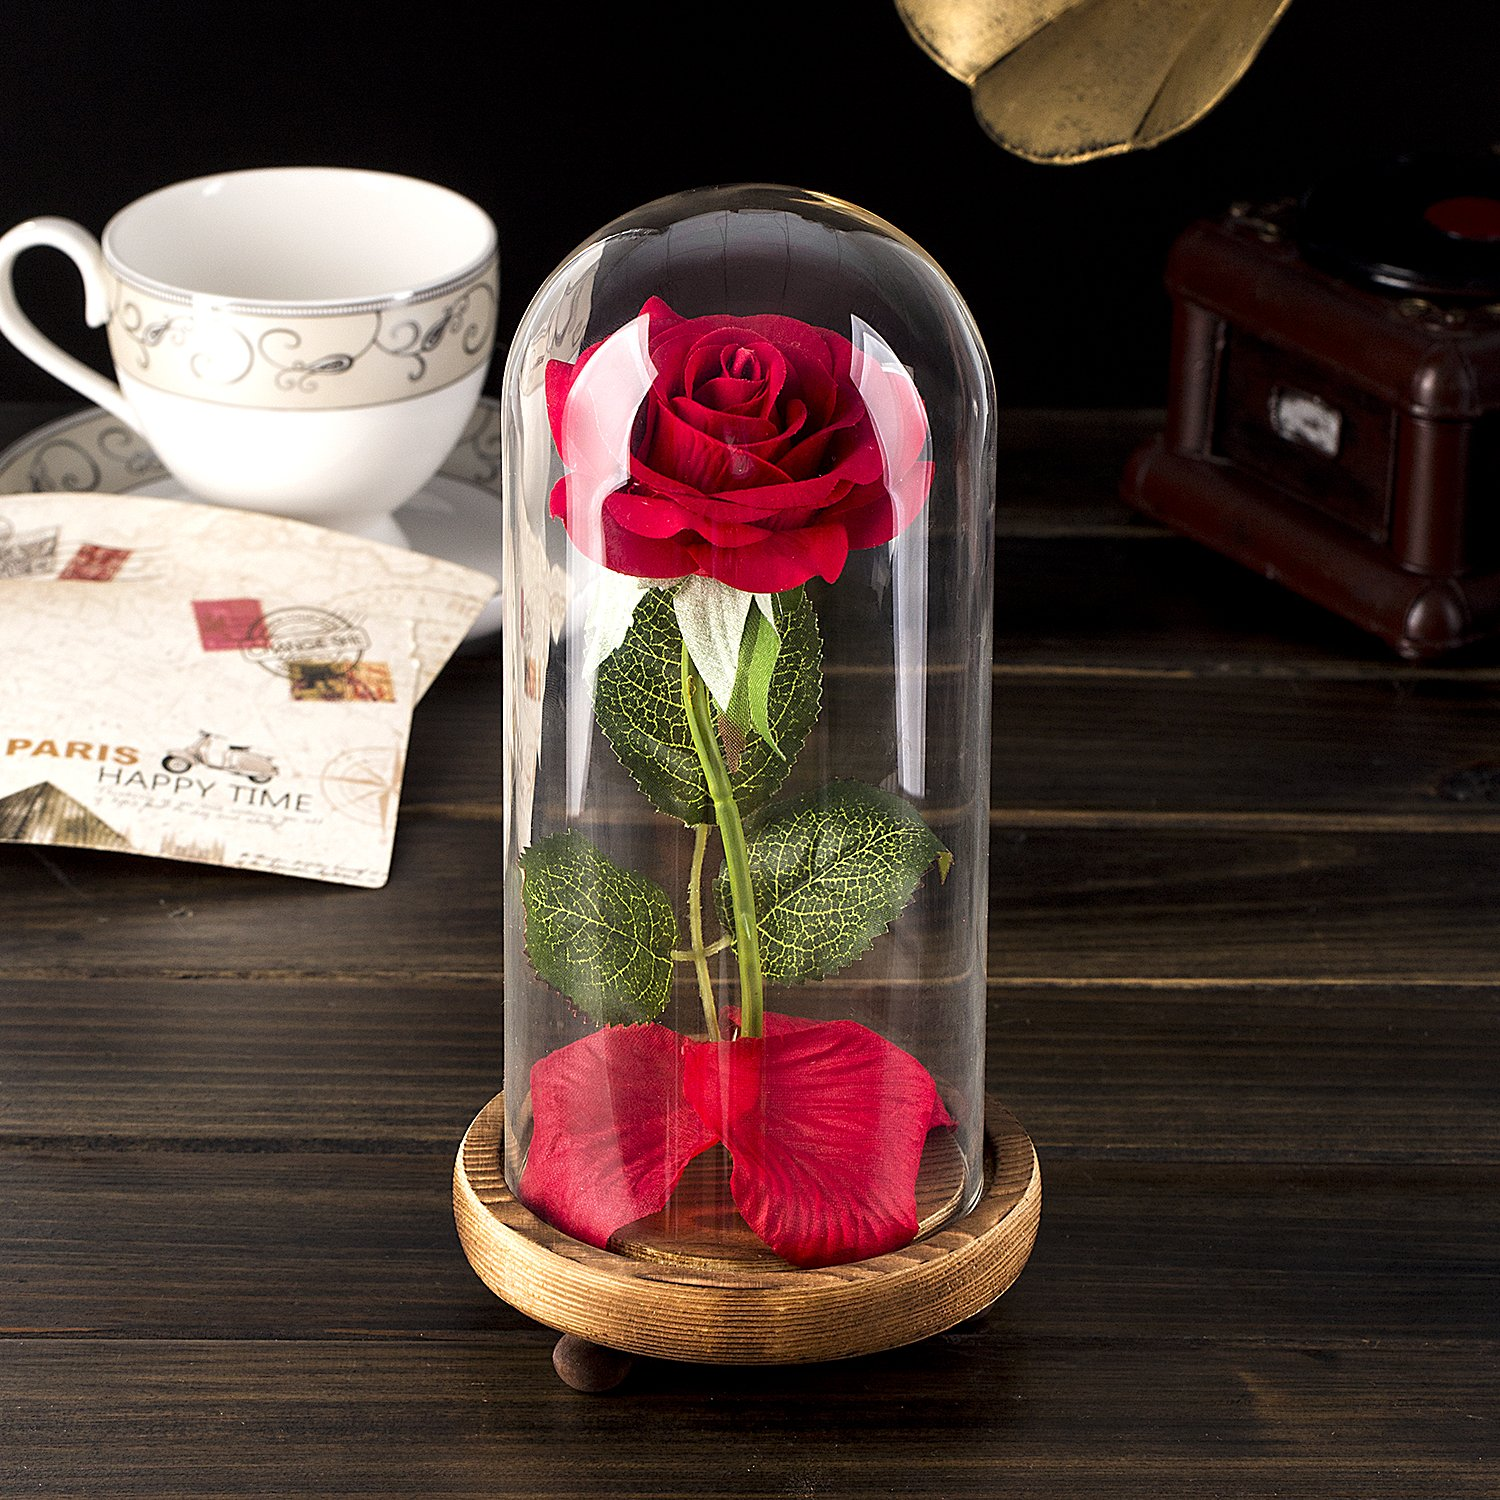 Beauty and the beast rose kit red silk rose and led light with beauty and the beast rose kit red silk rose and led light with fallen petals in glass dome on wooden base for home decor holiday party wedding izmirmasajfo Choice Image